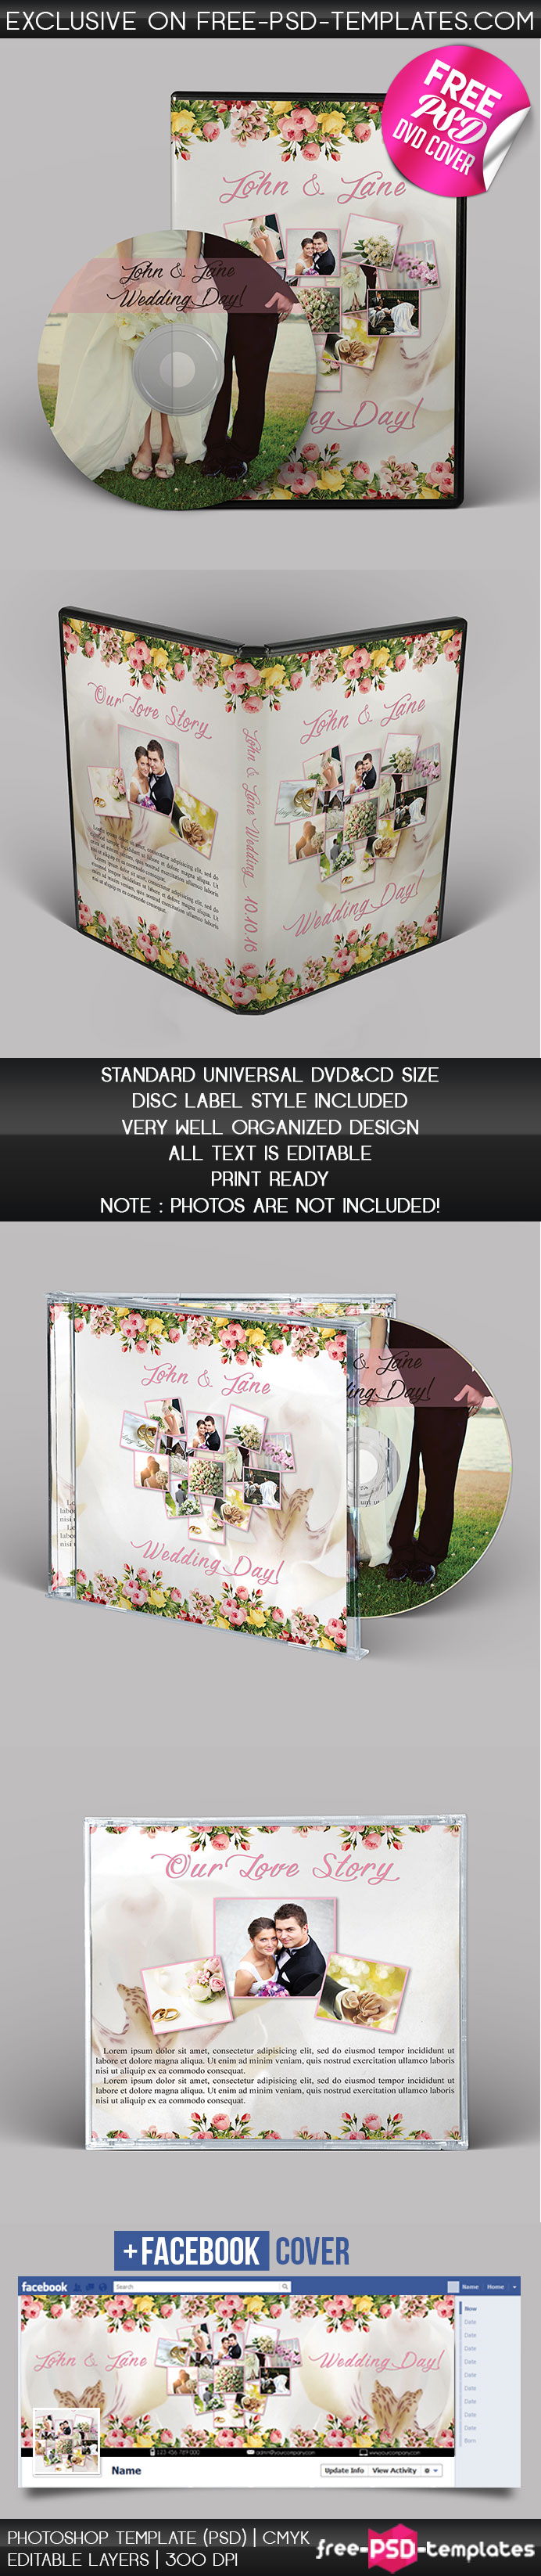 Preview_DVD_CD_cover_